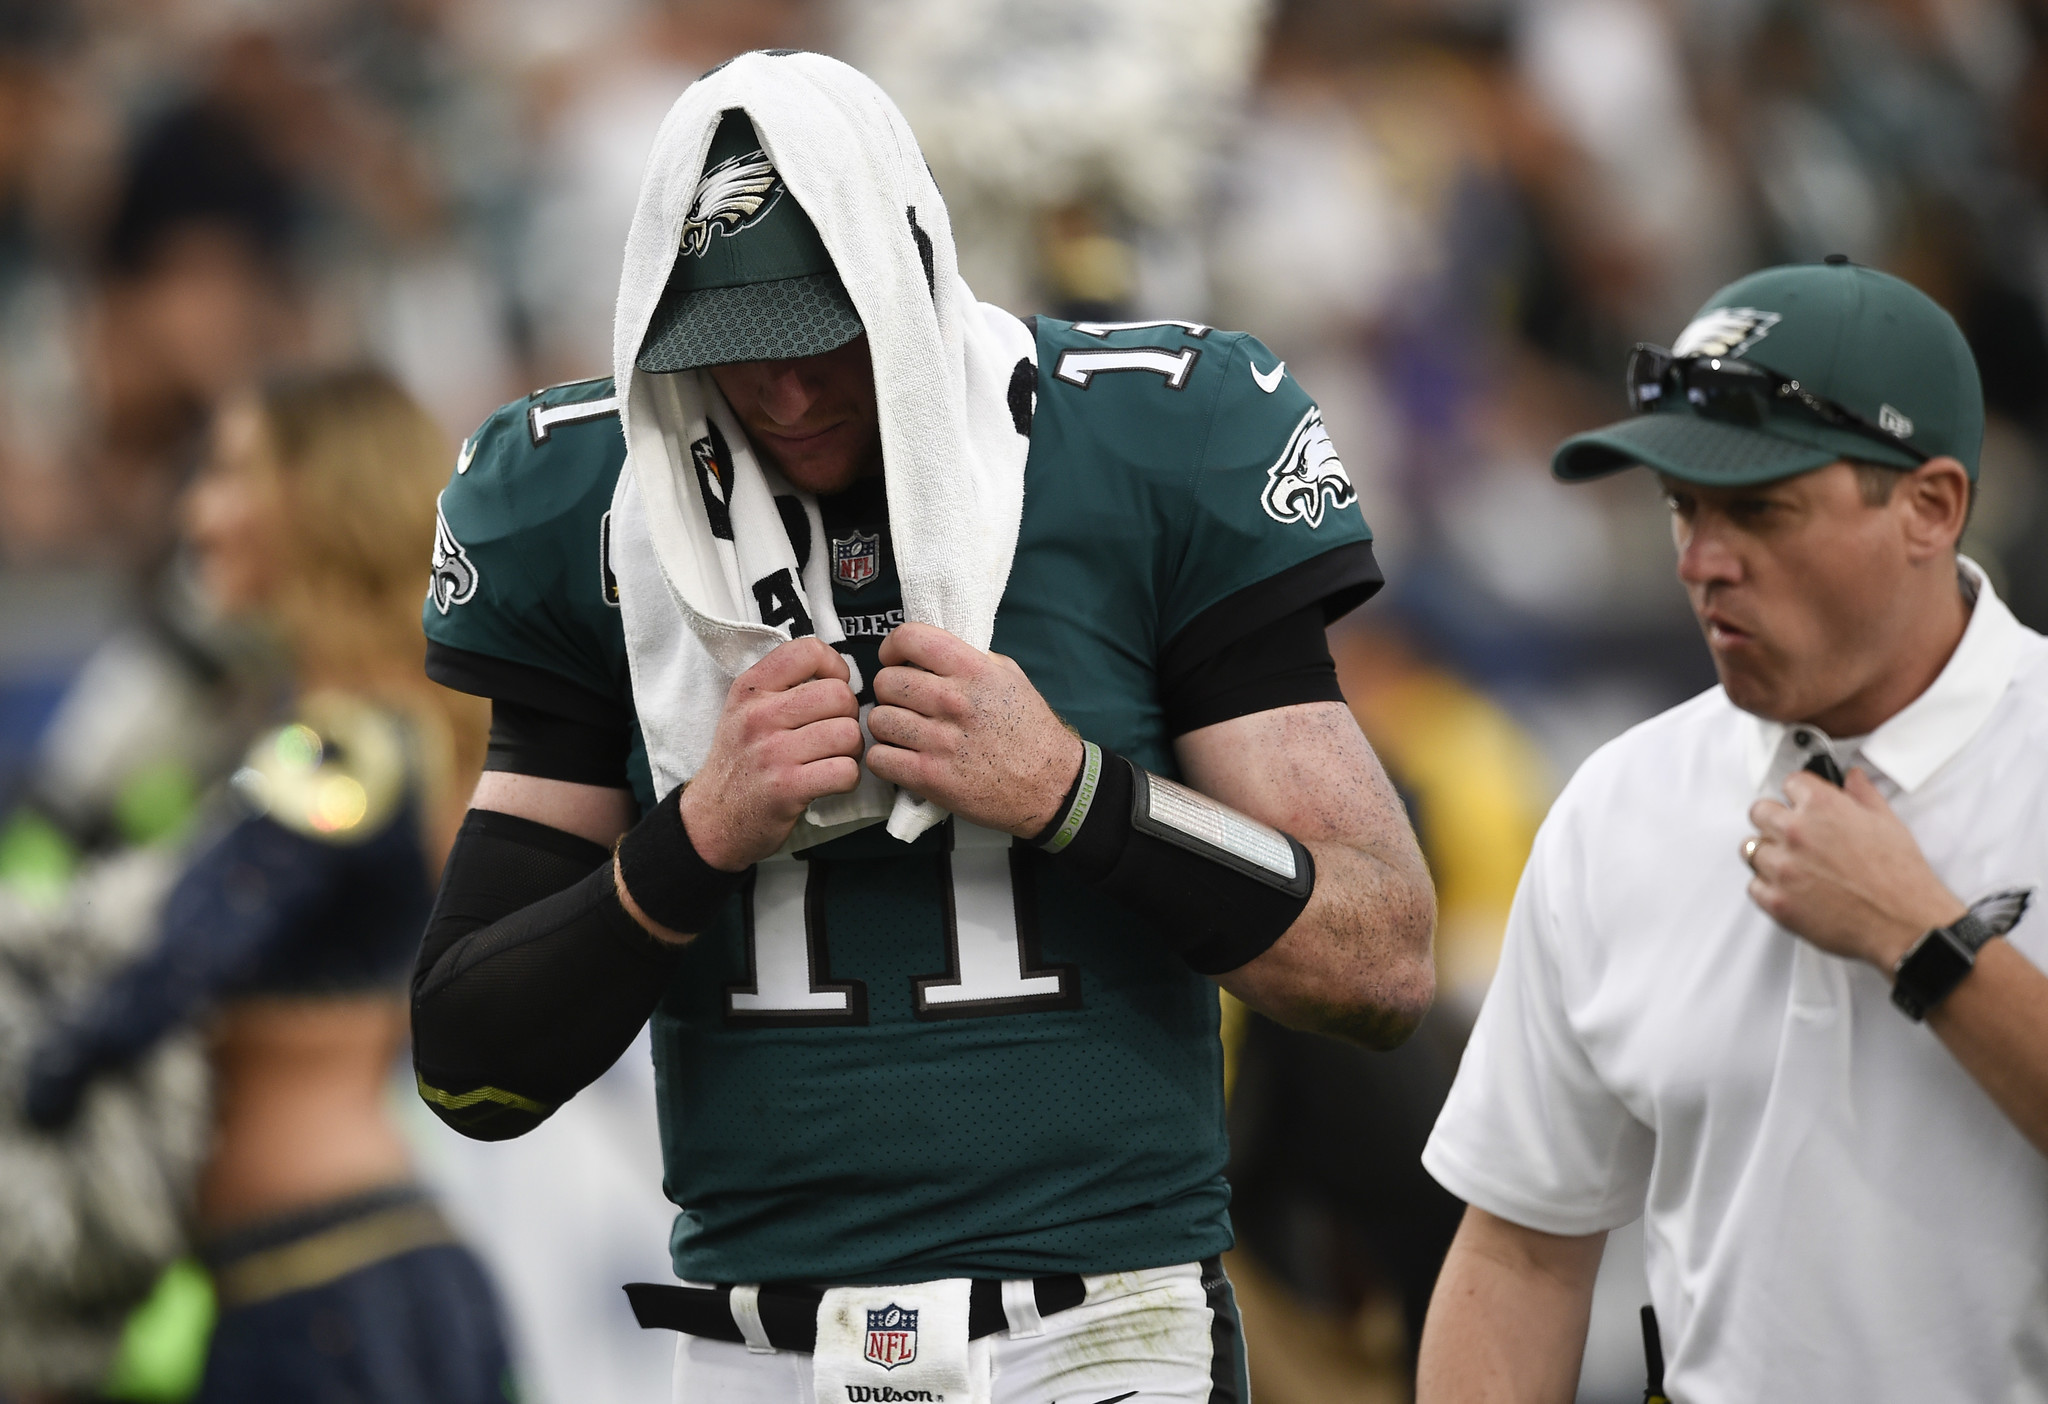 is there a place for carson wentz in the los angeles rams Philadelphia eagles quarterback carson wentz left sunday afternoon's game against the los angeles rams in the third quarter with a left knee injury, and eagles coach doug pederson said after the game that he did not have any additional information on the injury and refused to speculate, but noted.